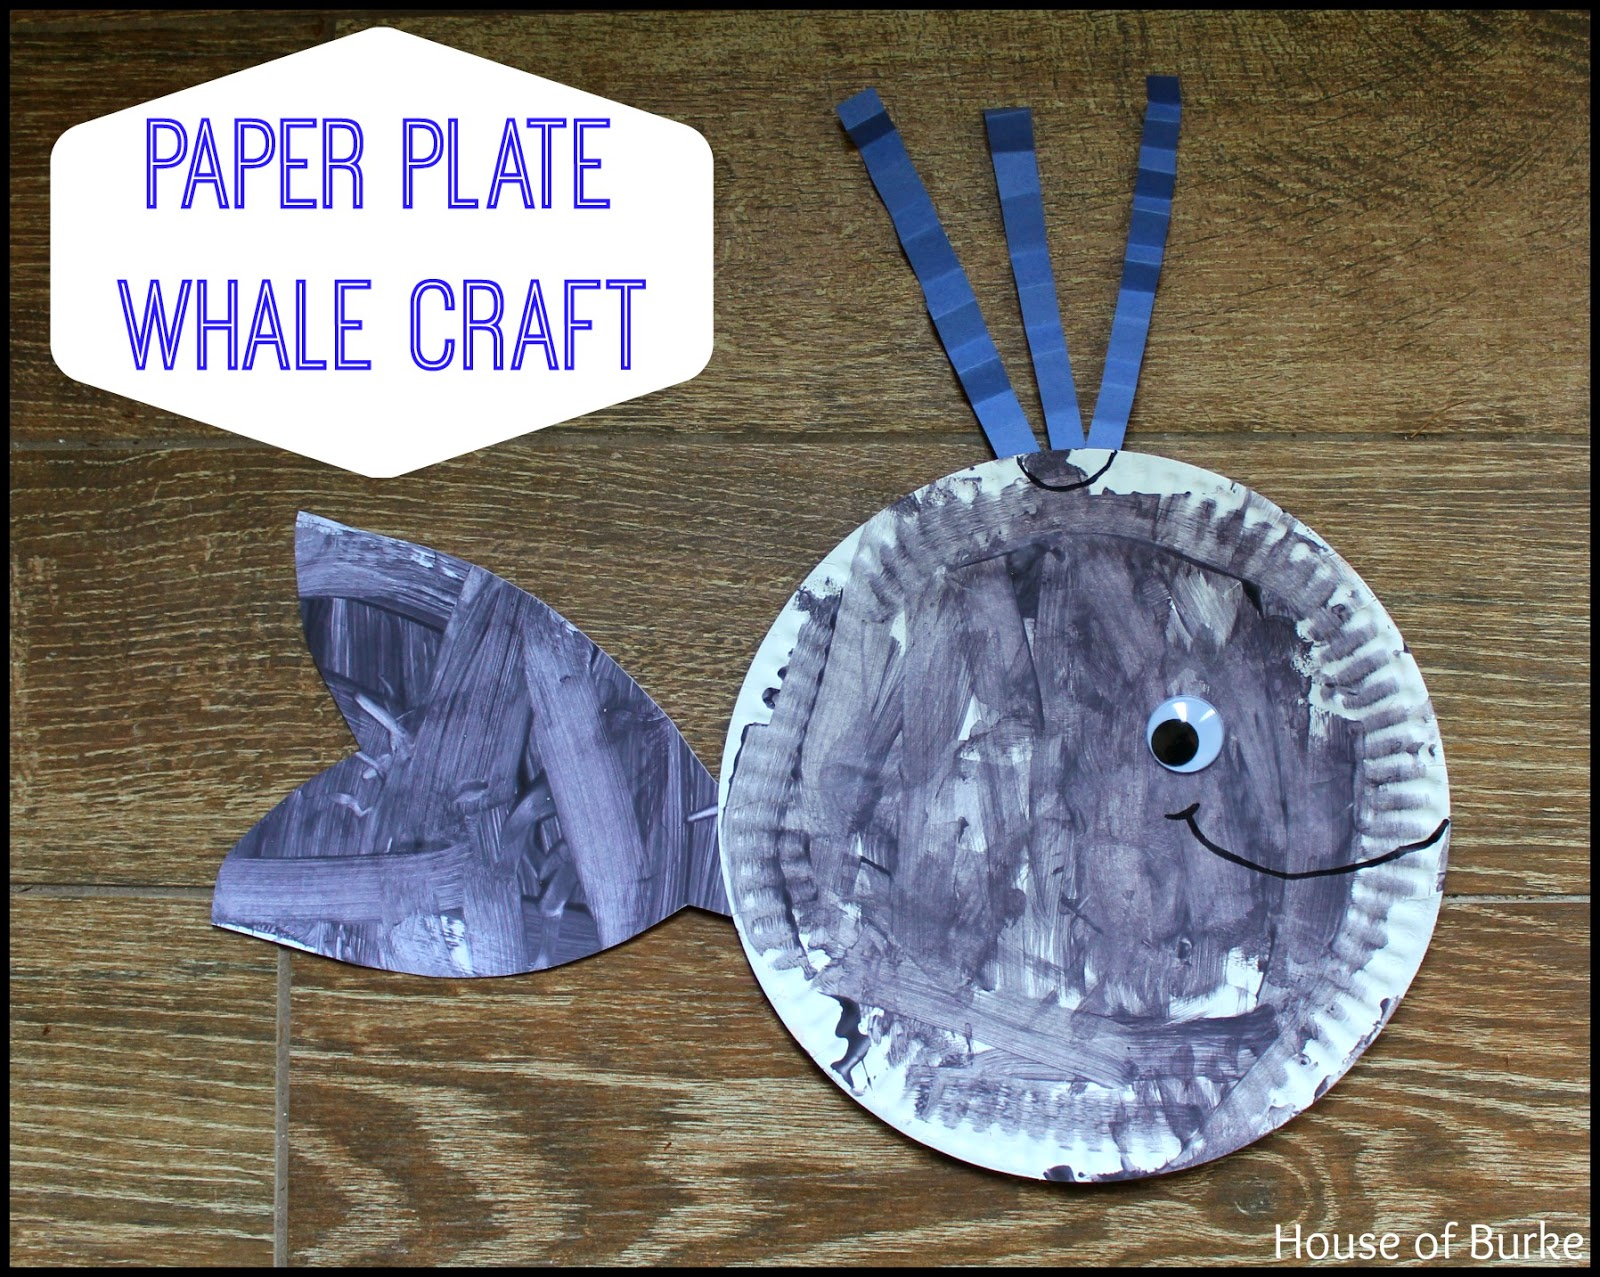 Paper Plate Whale Craft. By Blayne Burke. (This post contains affiliate links. Thanks for supporting us!) & House of Burke: Paper Plate Whale Craft